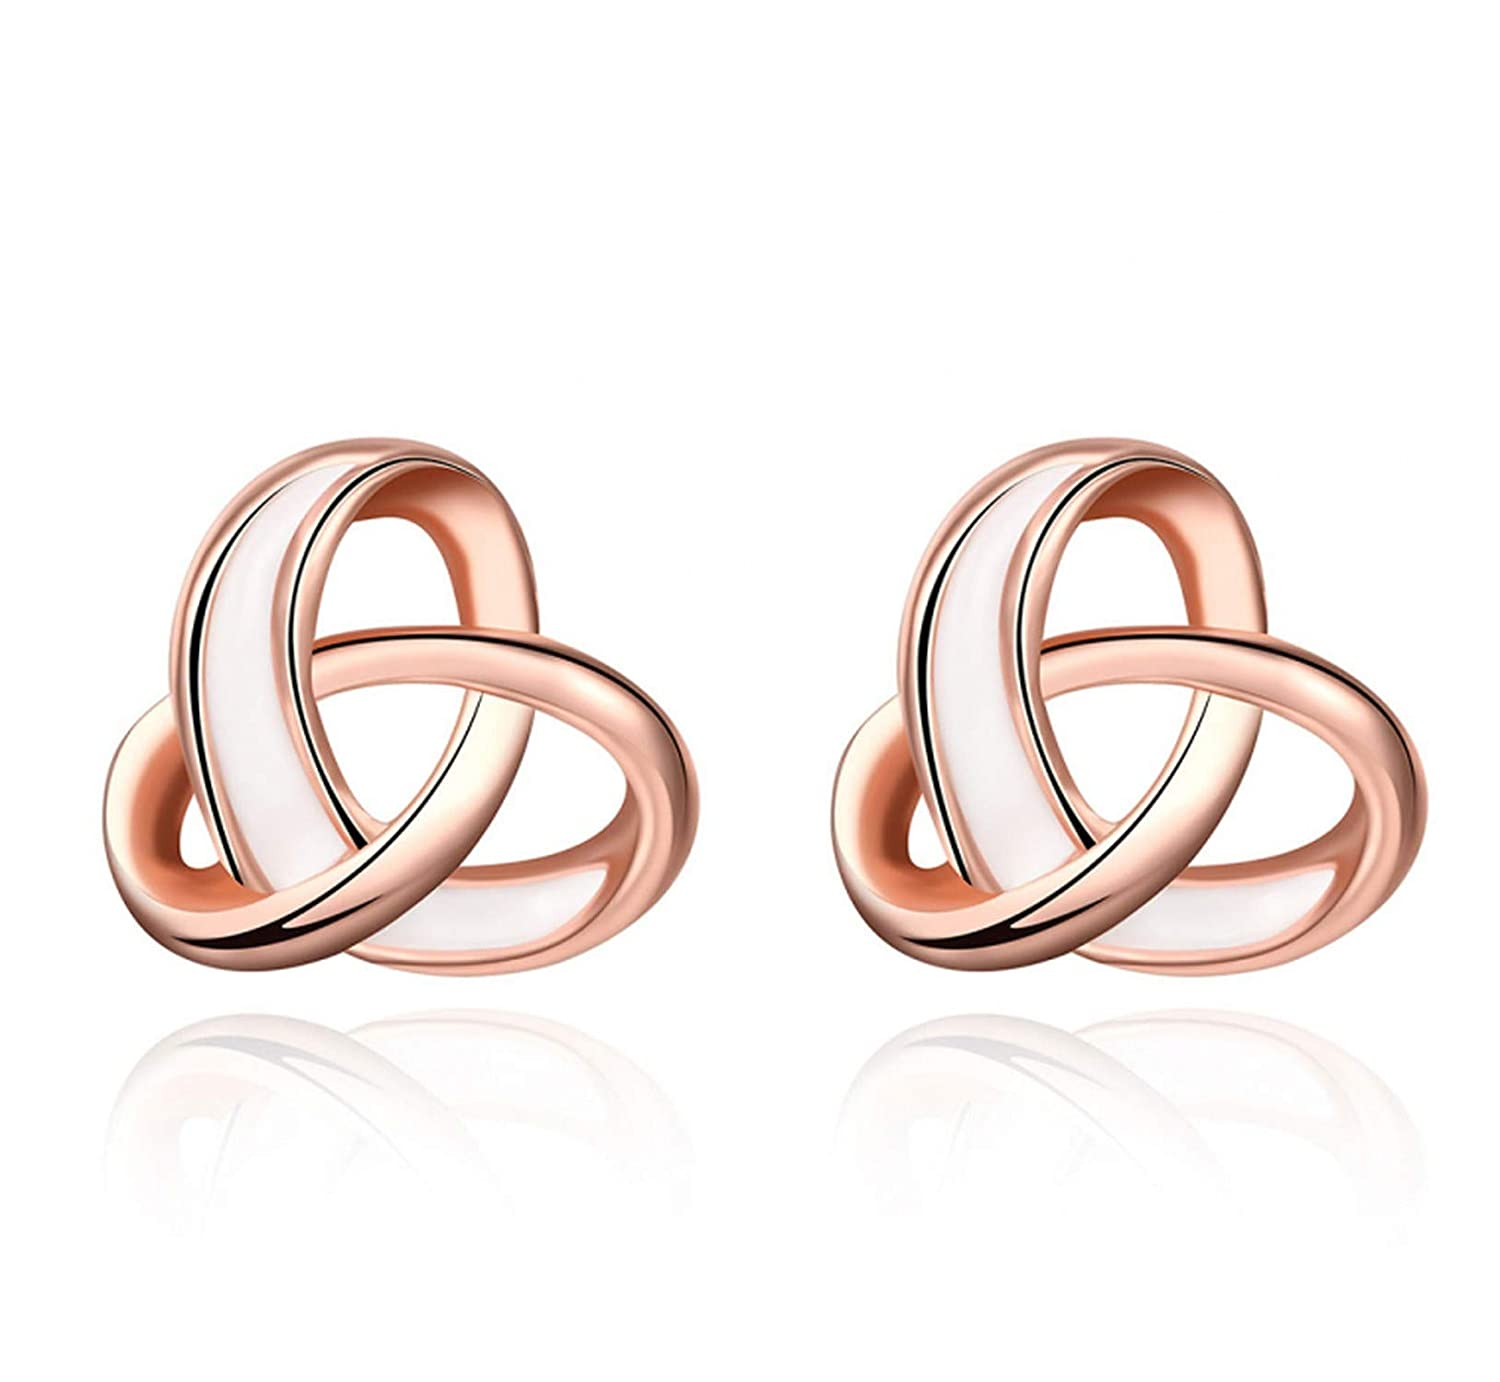 Fashion Jewelry Earing For Women Rose Gold Color Charming Design Stud Earrings